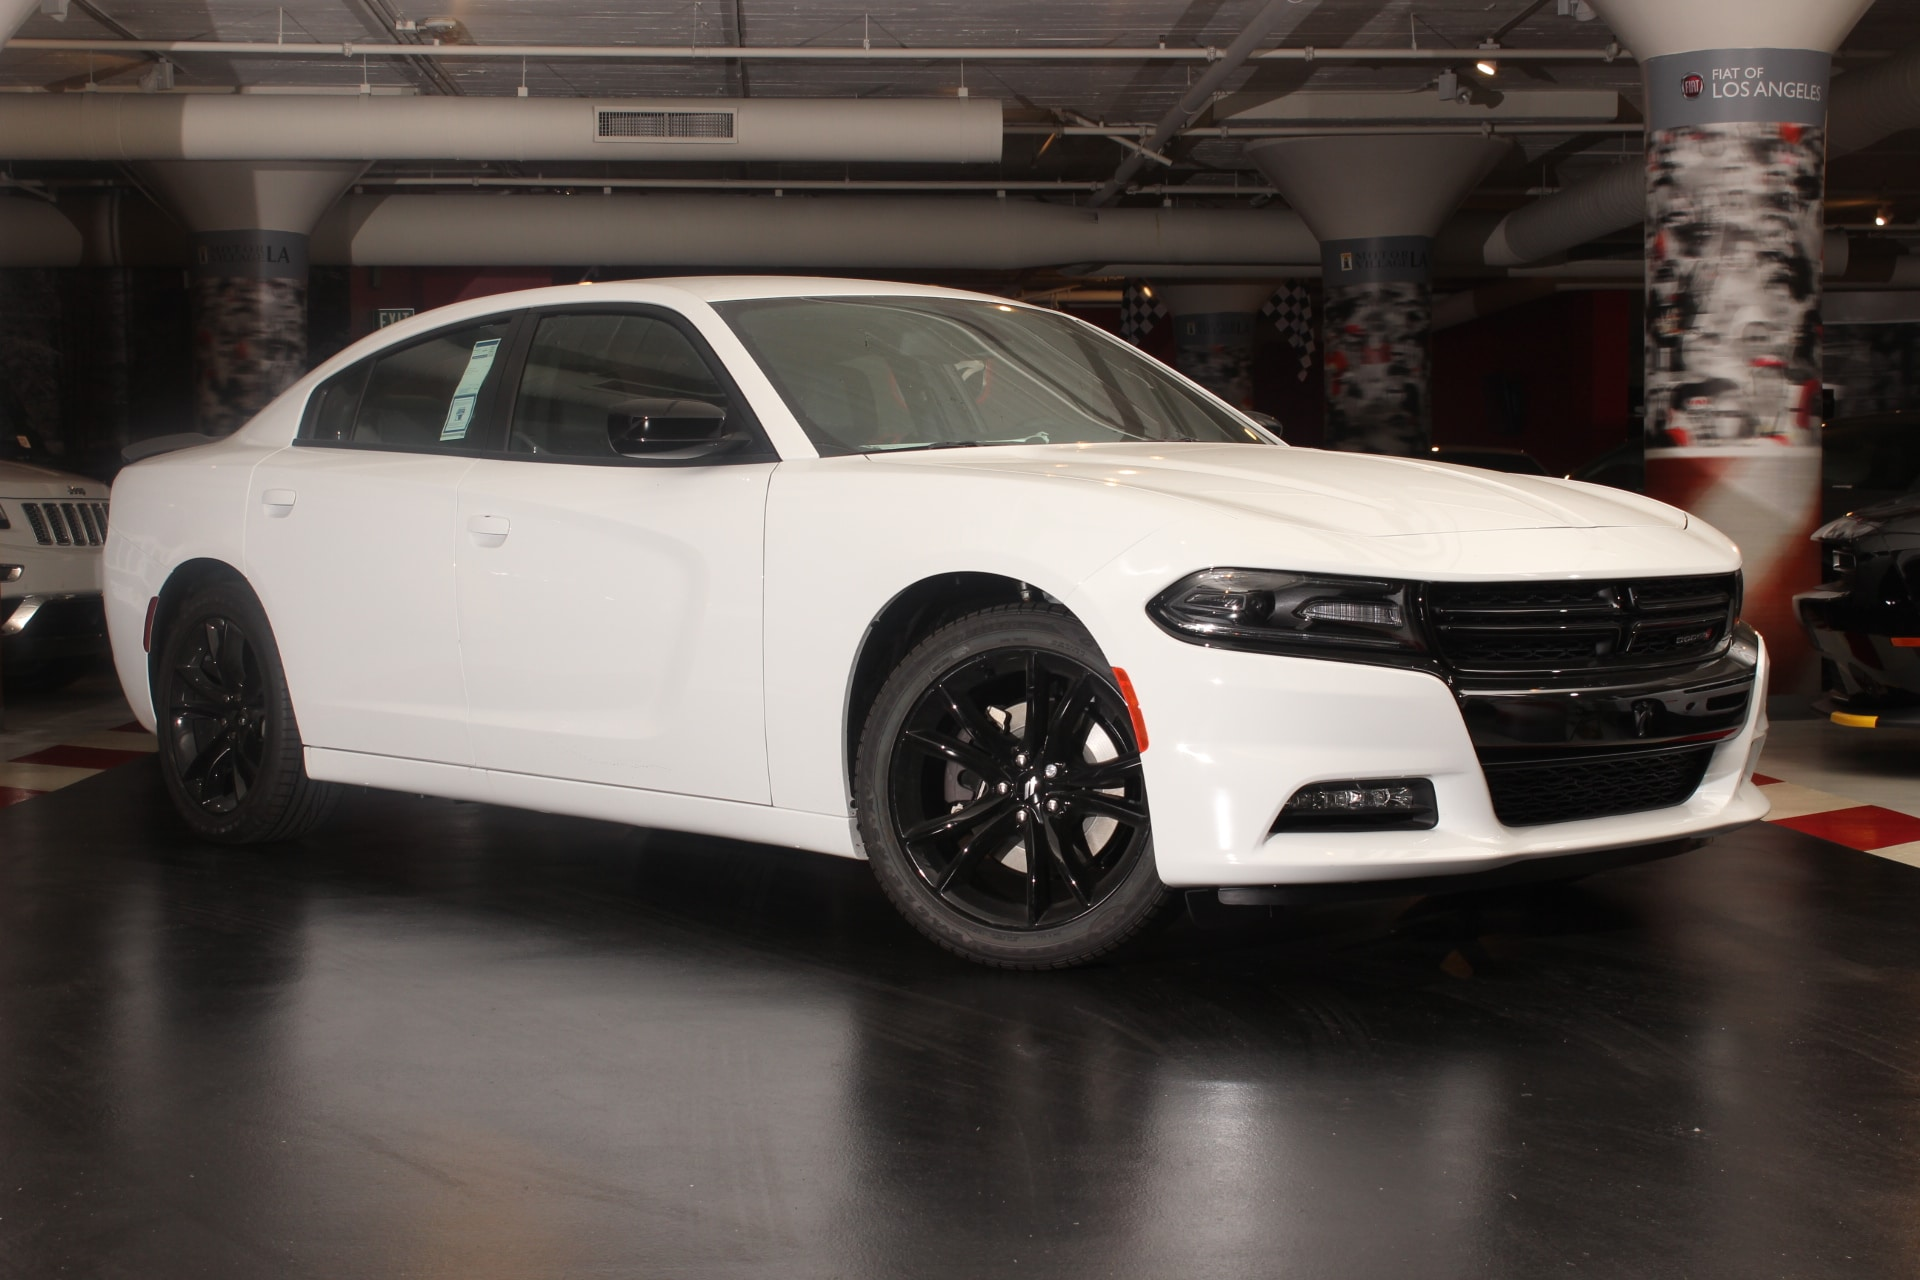 2017 Dodge Charger SXT  10 Beats Premium Speakers wSubwoofer 3 Mode Electronic Stability Contro